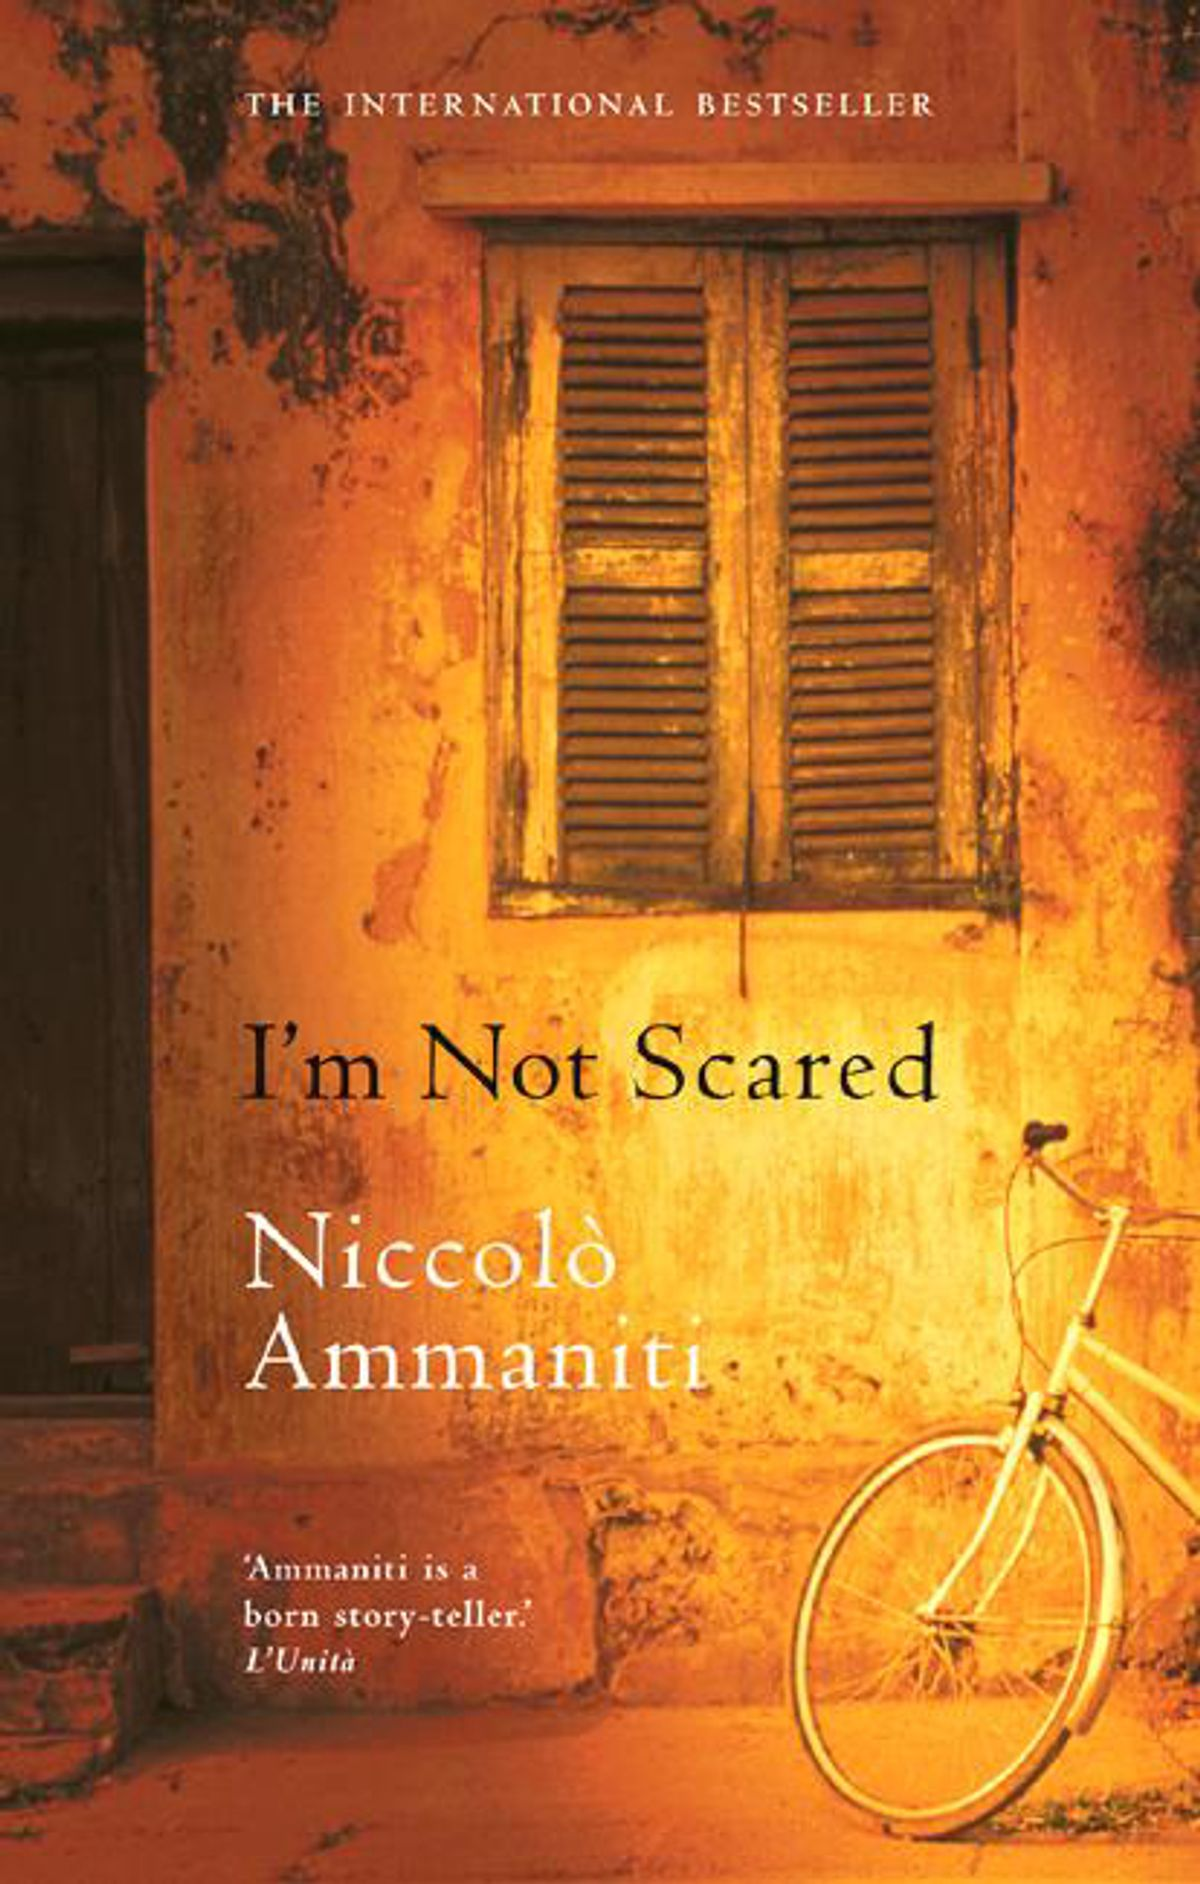 niccolo ammanitis novel im not scared essay Niccolo ammaniti's i'm not scared in niccolo ammaniti's masterpiece, i'm not scared, we explore the plight of human endeavour against all odds.